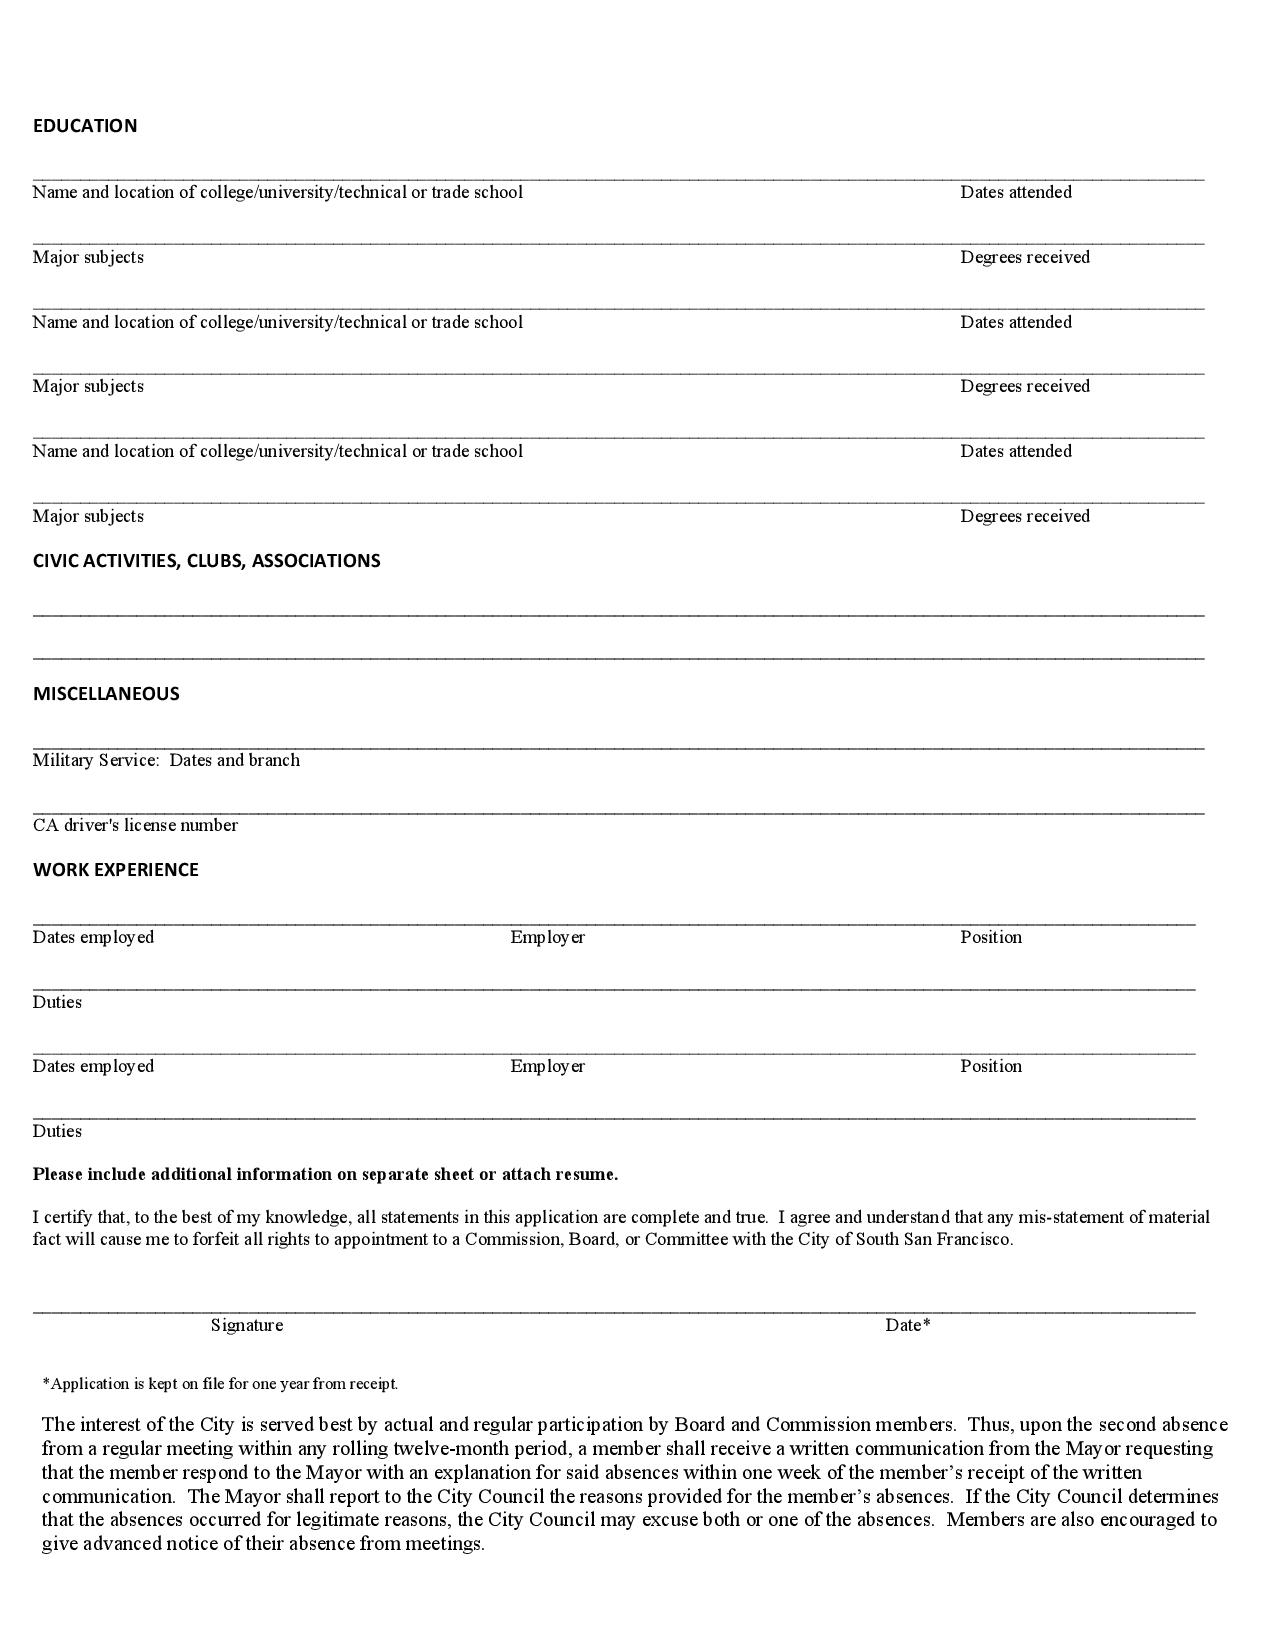 Bd Comn Application -2-page-002